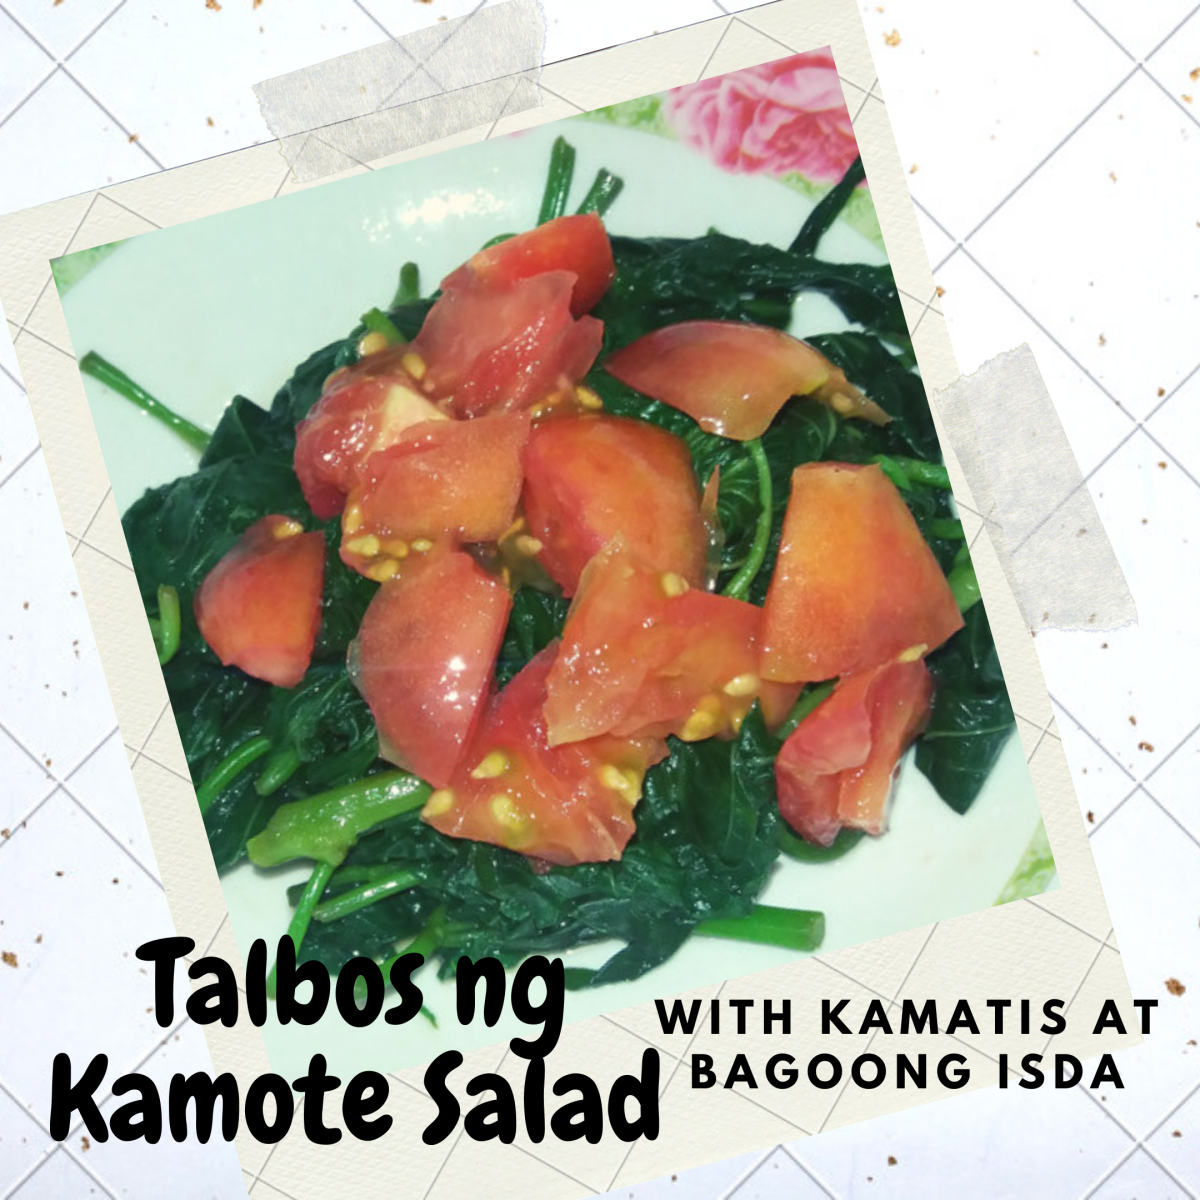 Talbos Ng Kamote Salad With Kamatis and Bagoong Isda